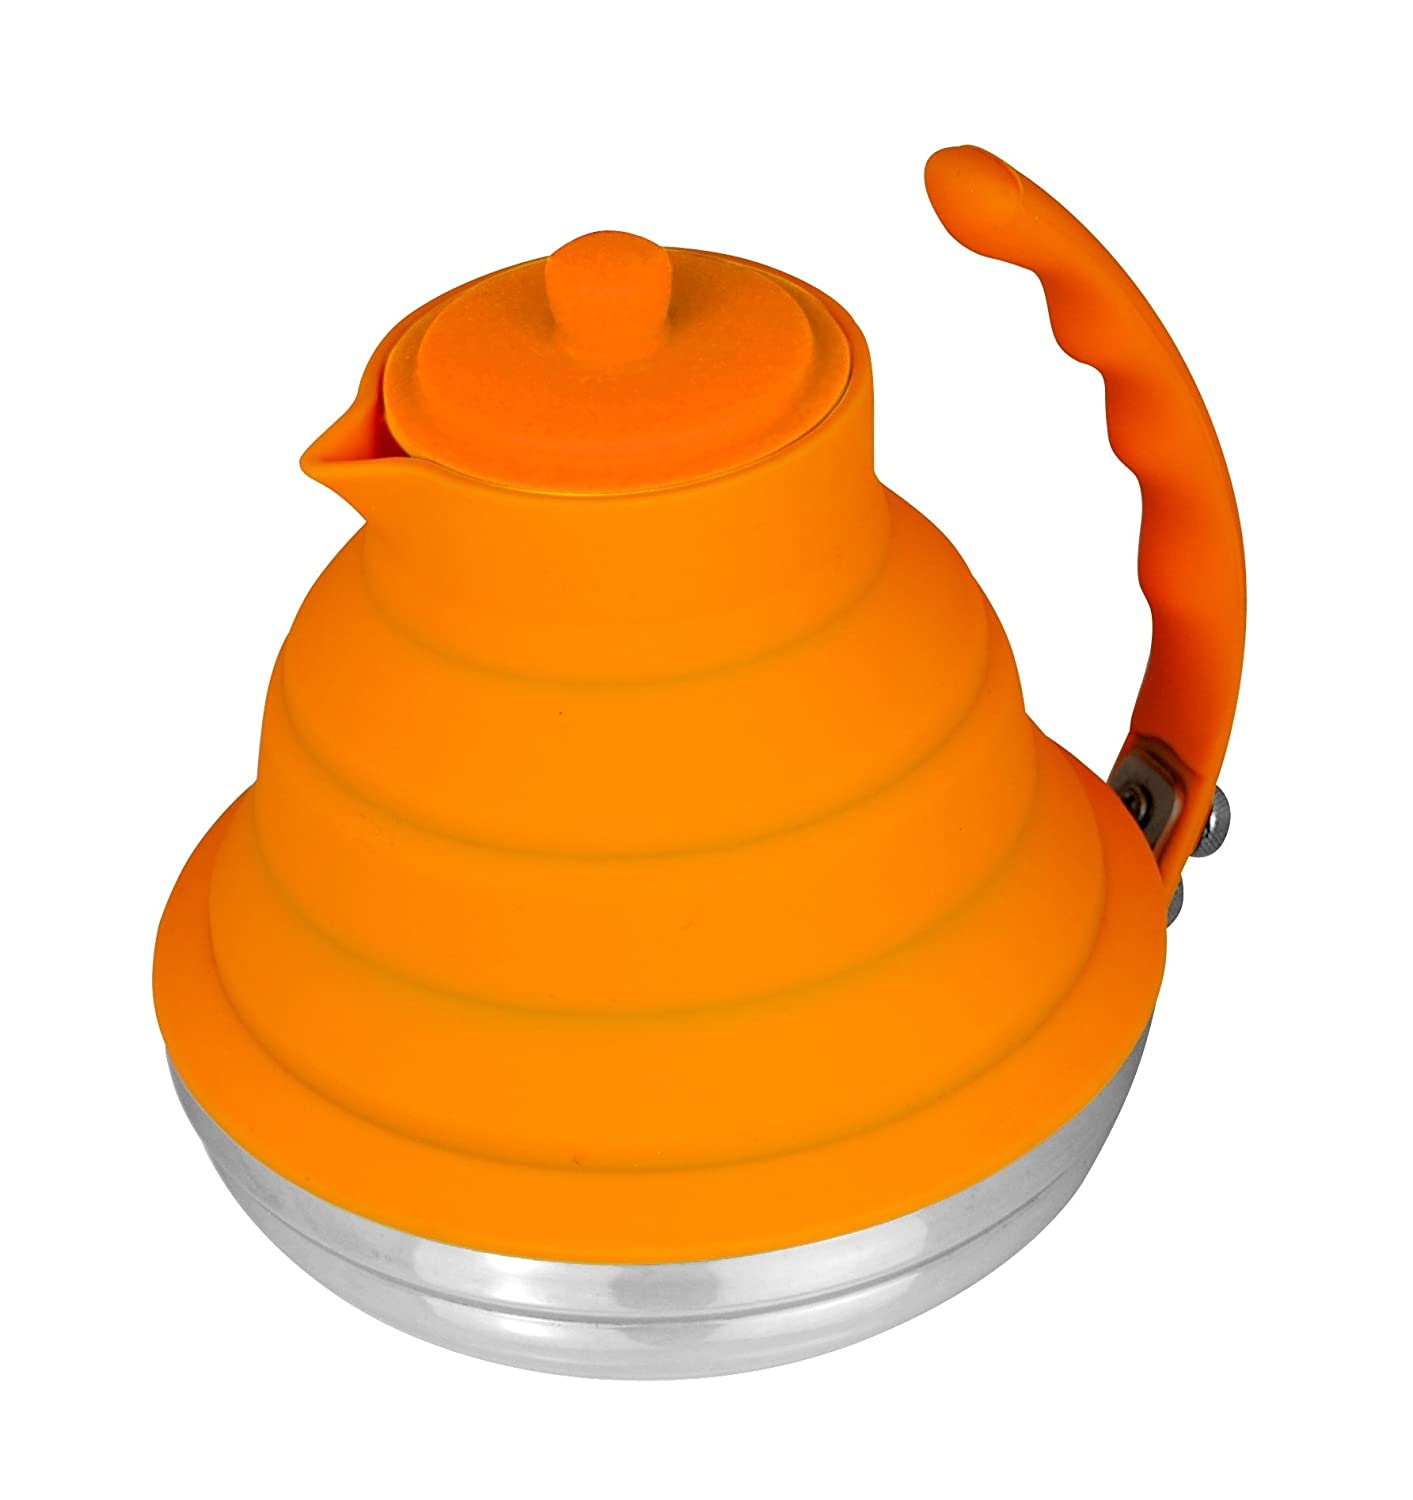 amazoncom better houseware collapsible tea kettle orange  - amazoncom better houseware collapsible tea kettle orange silicon teakettle kitchen  dining